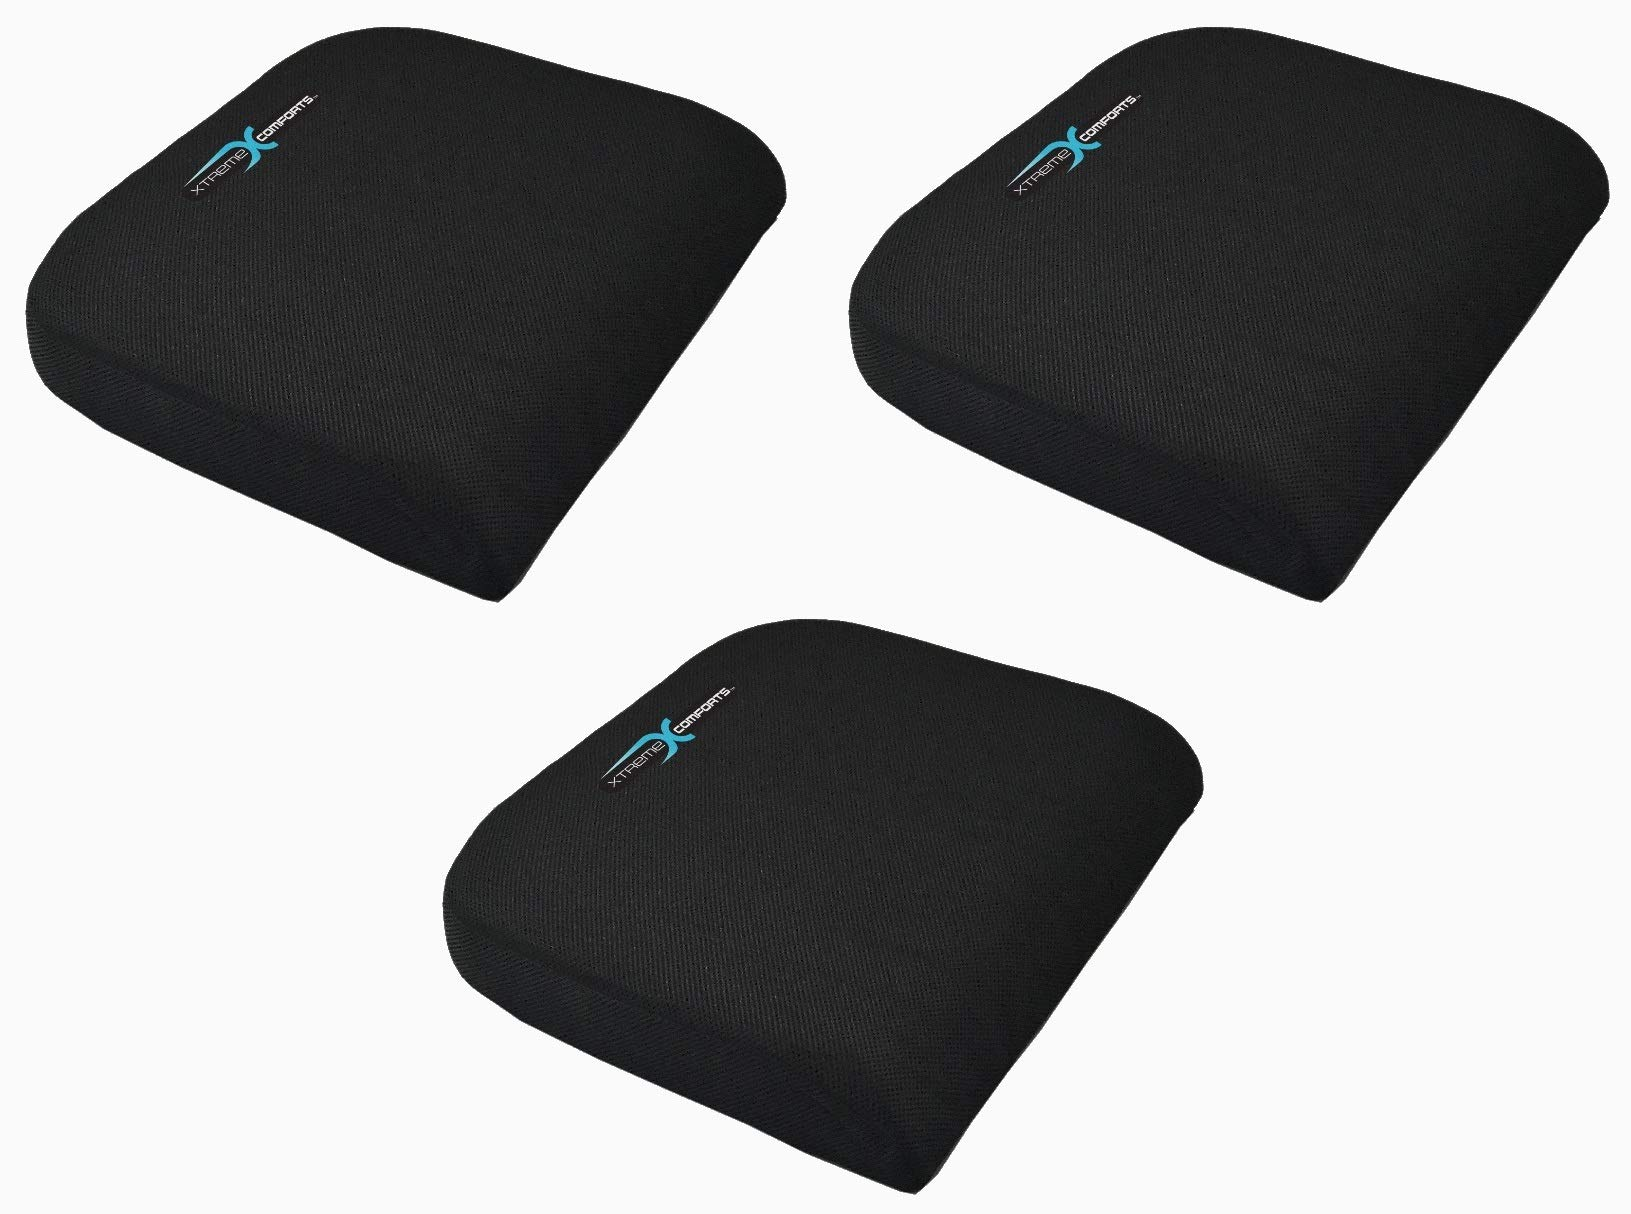 Xtreme Comforts Large Seat Cushion with Carry Handle and Anti Slip Bottom Gives Relief from Back Pain (3 Pack)